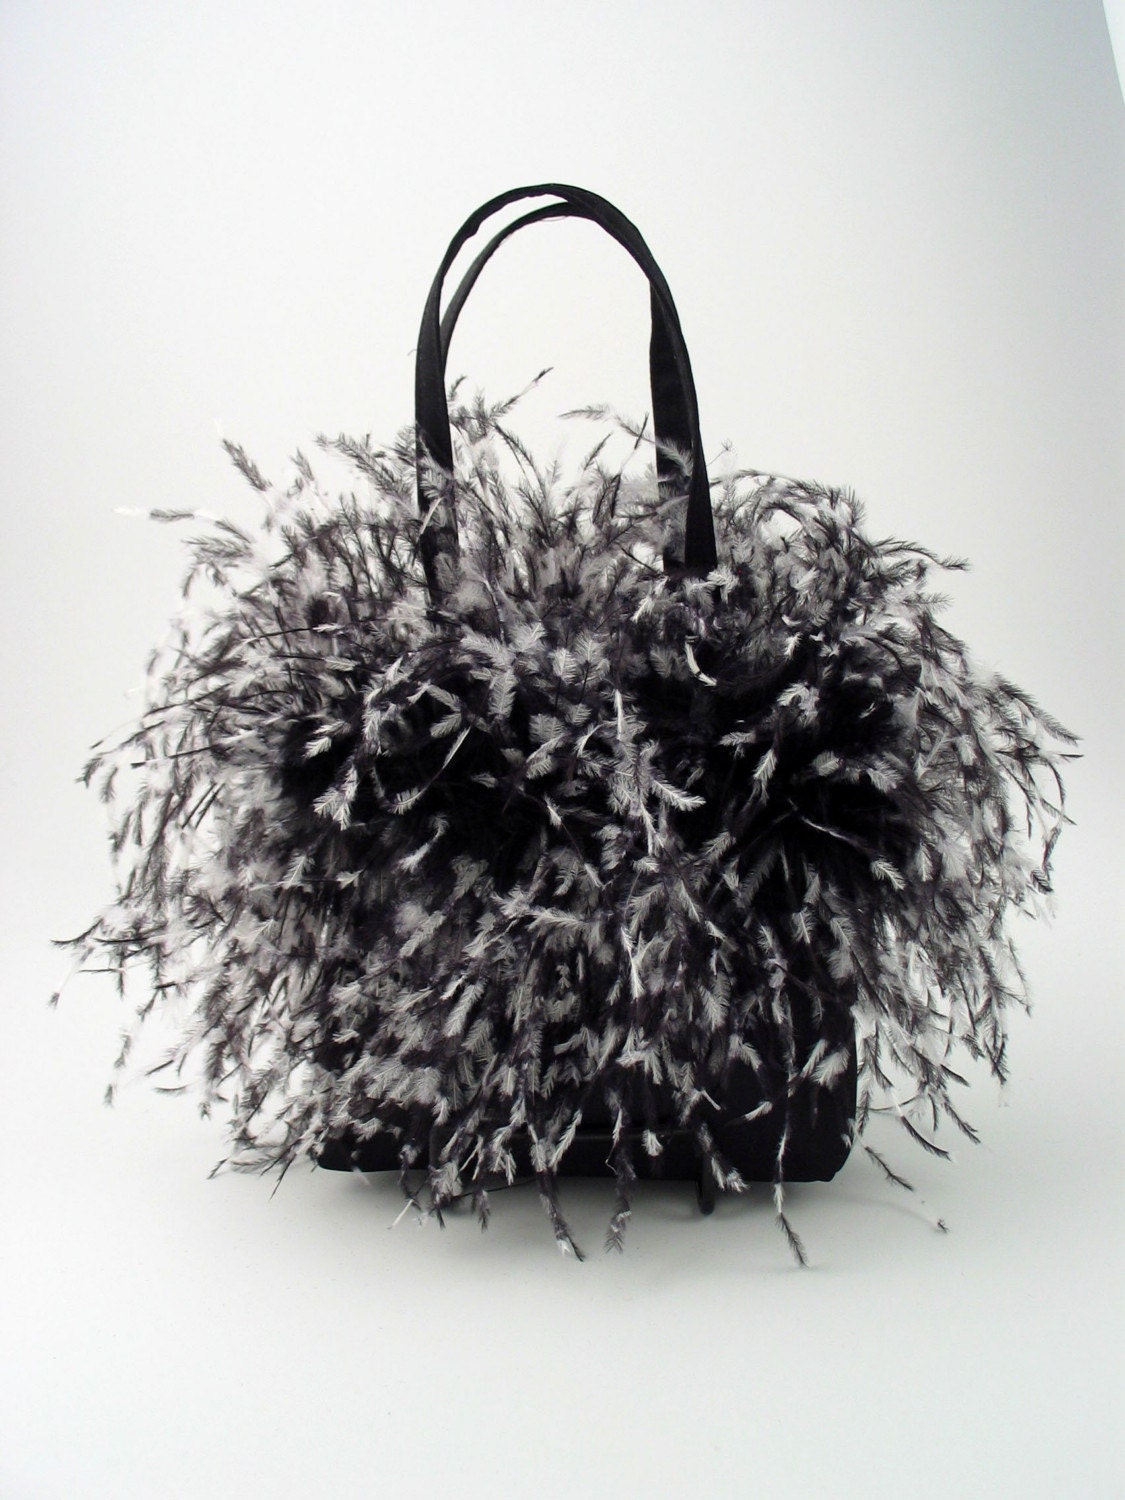 BLACK AND WHITE OSTRICH FEATHER PURSE HANDBAG